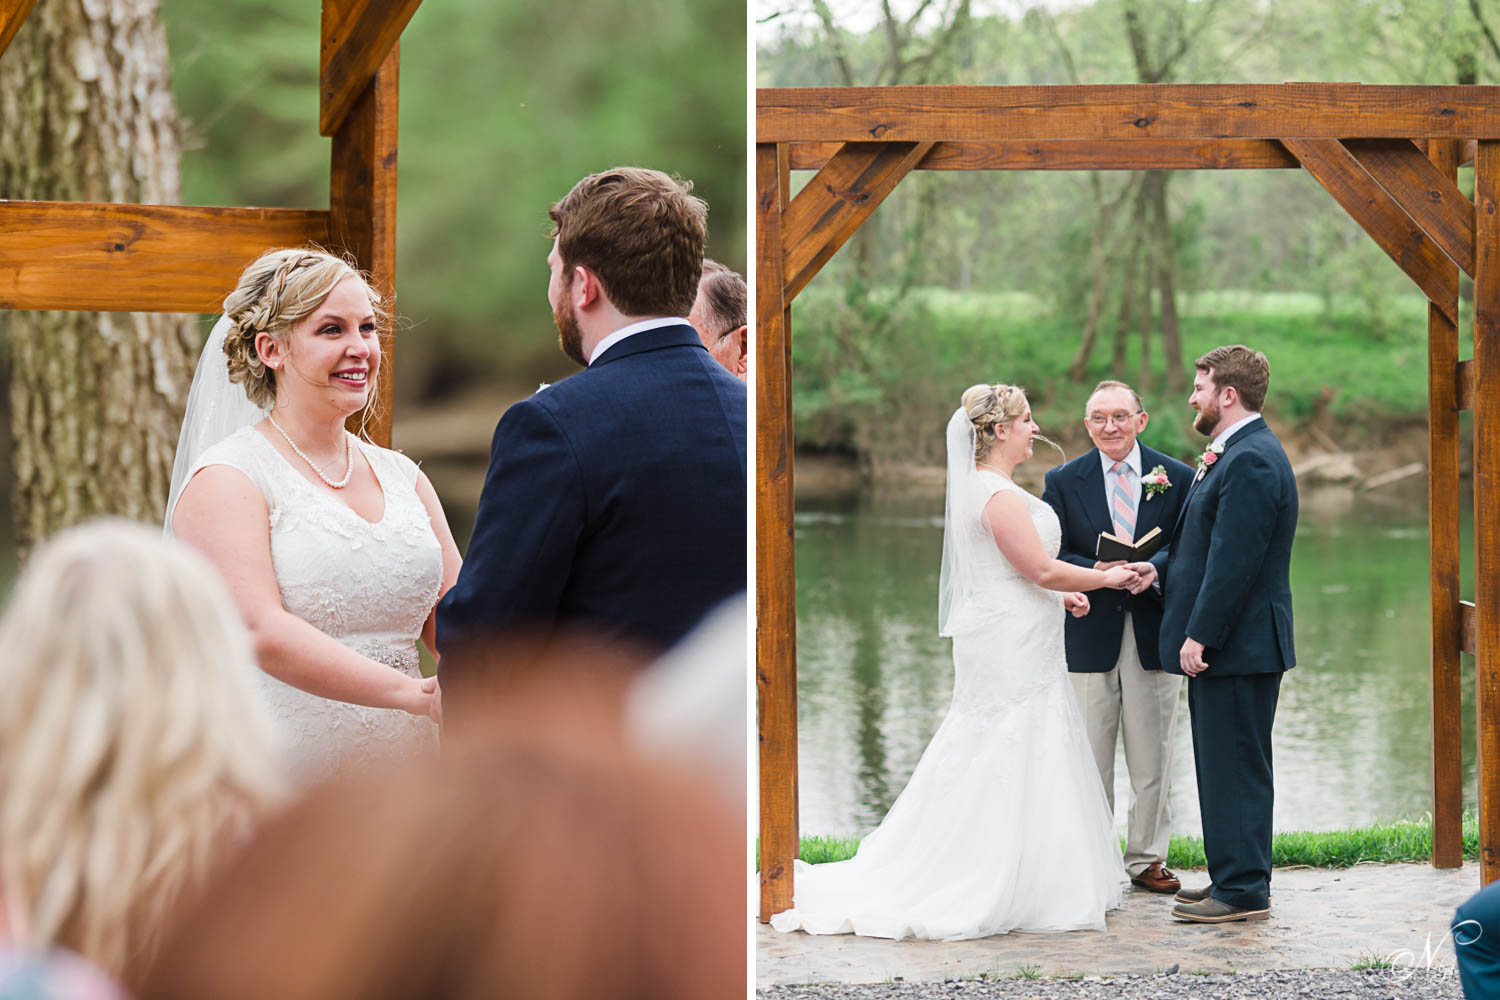 wedding ceremony outside on the river at Hiwassee river weddings